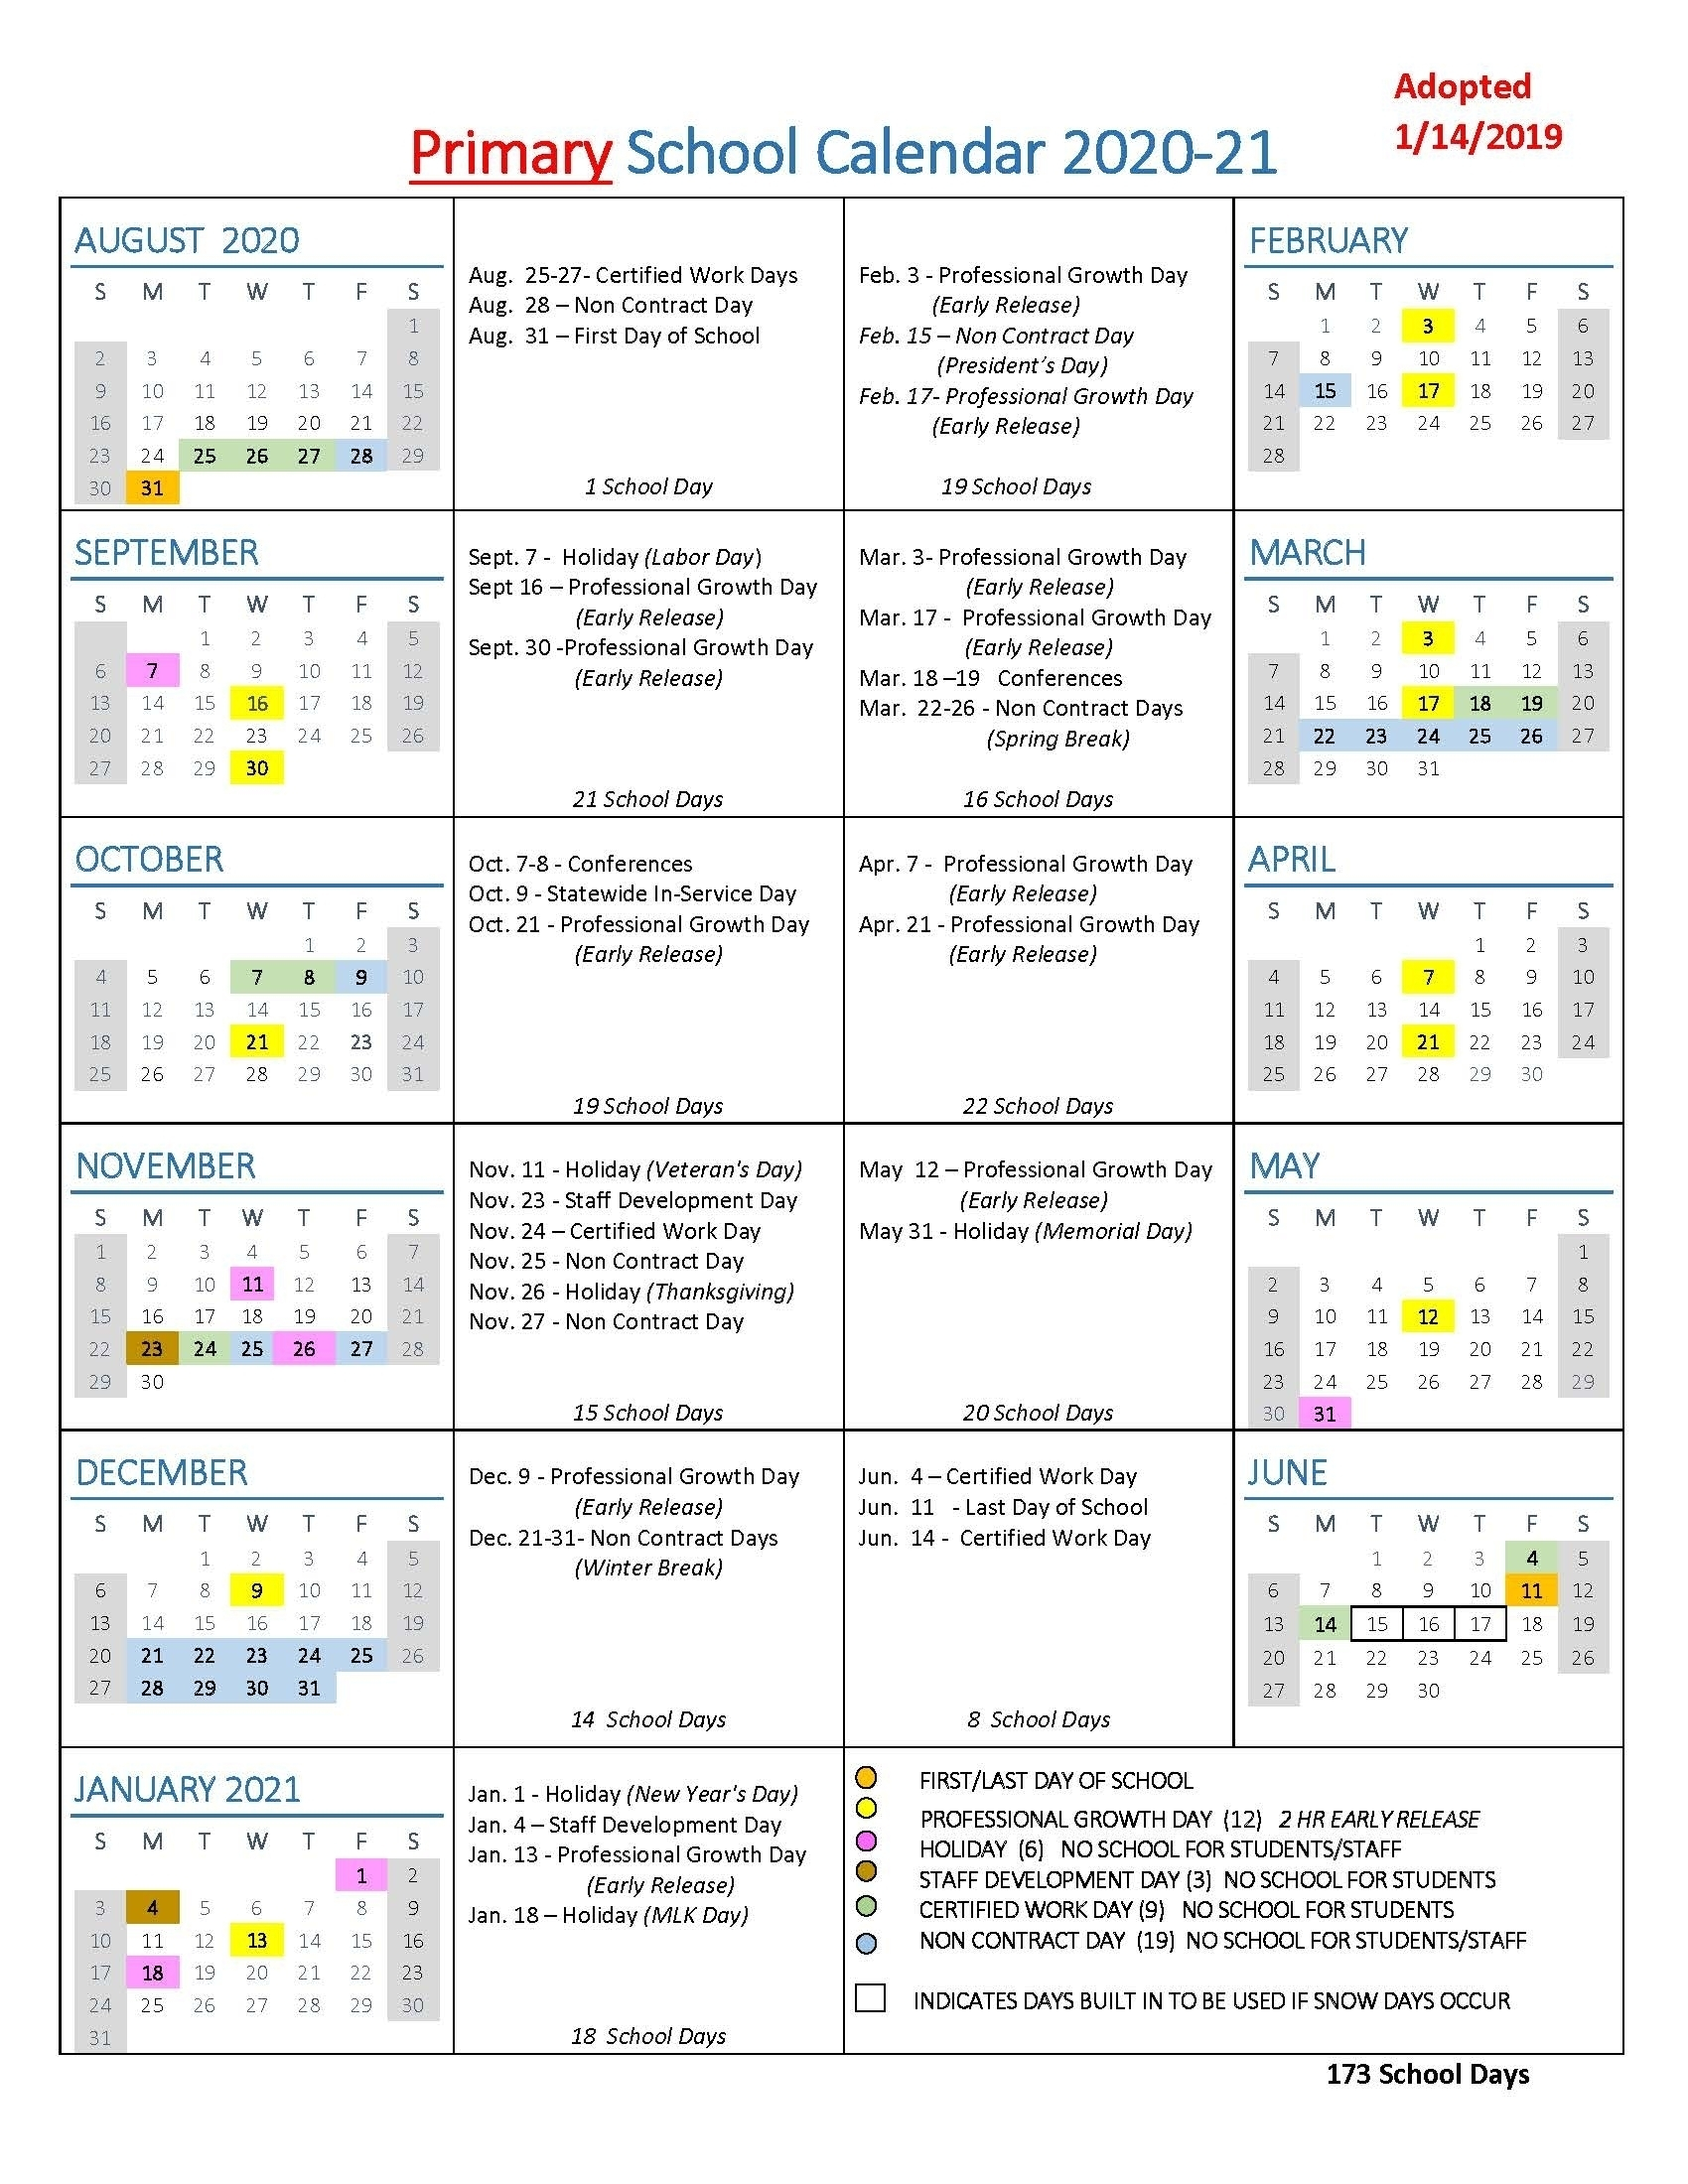 Calendar With All The Special Days In 2020 - Calendar with regard to 2020 Calendar With Special Days